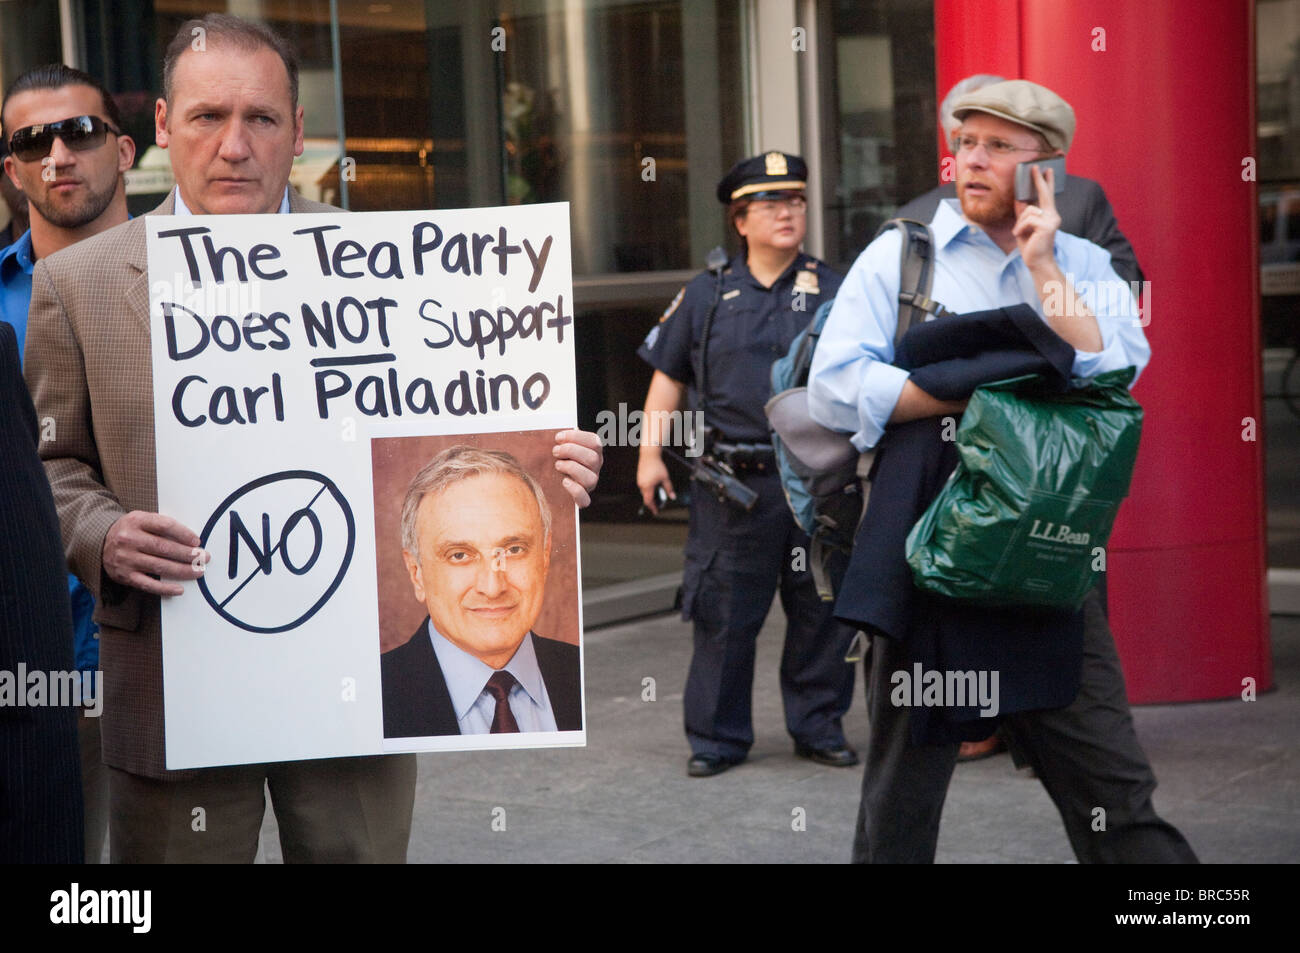 Members of the NYS Tea Party gather in front of the New York State governor's offices in New Stock Photo